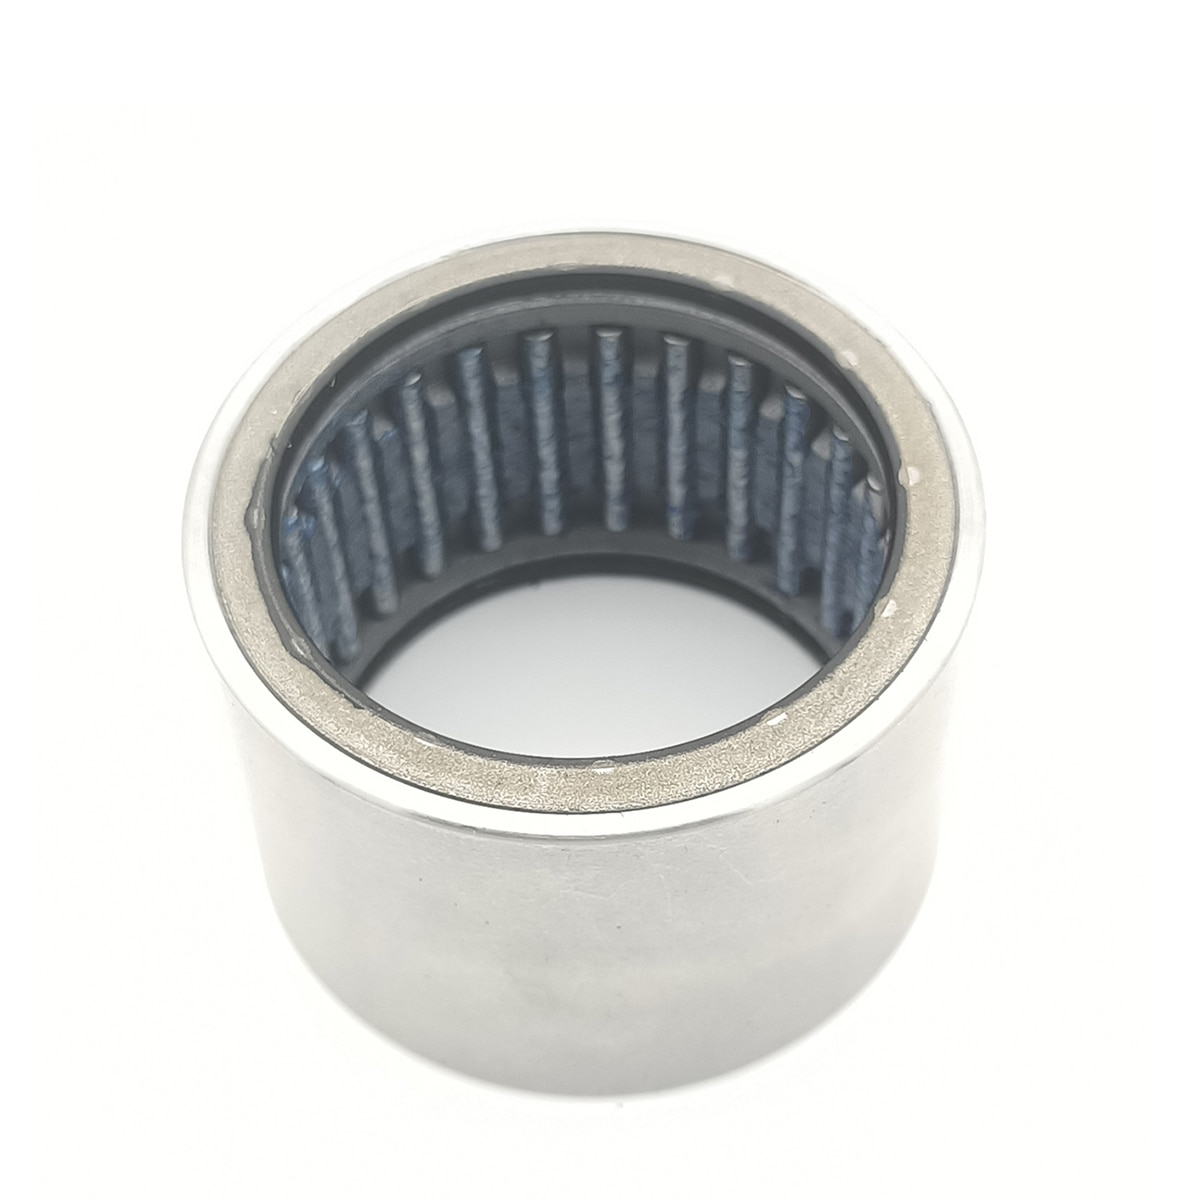 Polaris rzr 900 RZR 1000 Primary Clutch Bearing Needle And Washer Fits Polaris RZR XP XP4 1000 enlarge